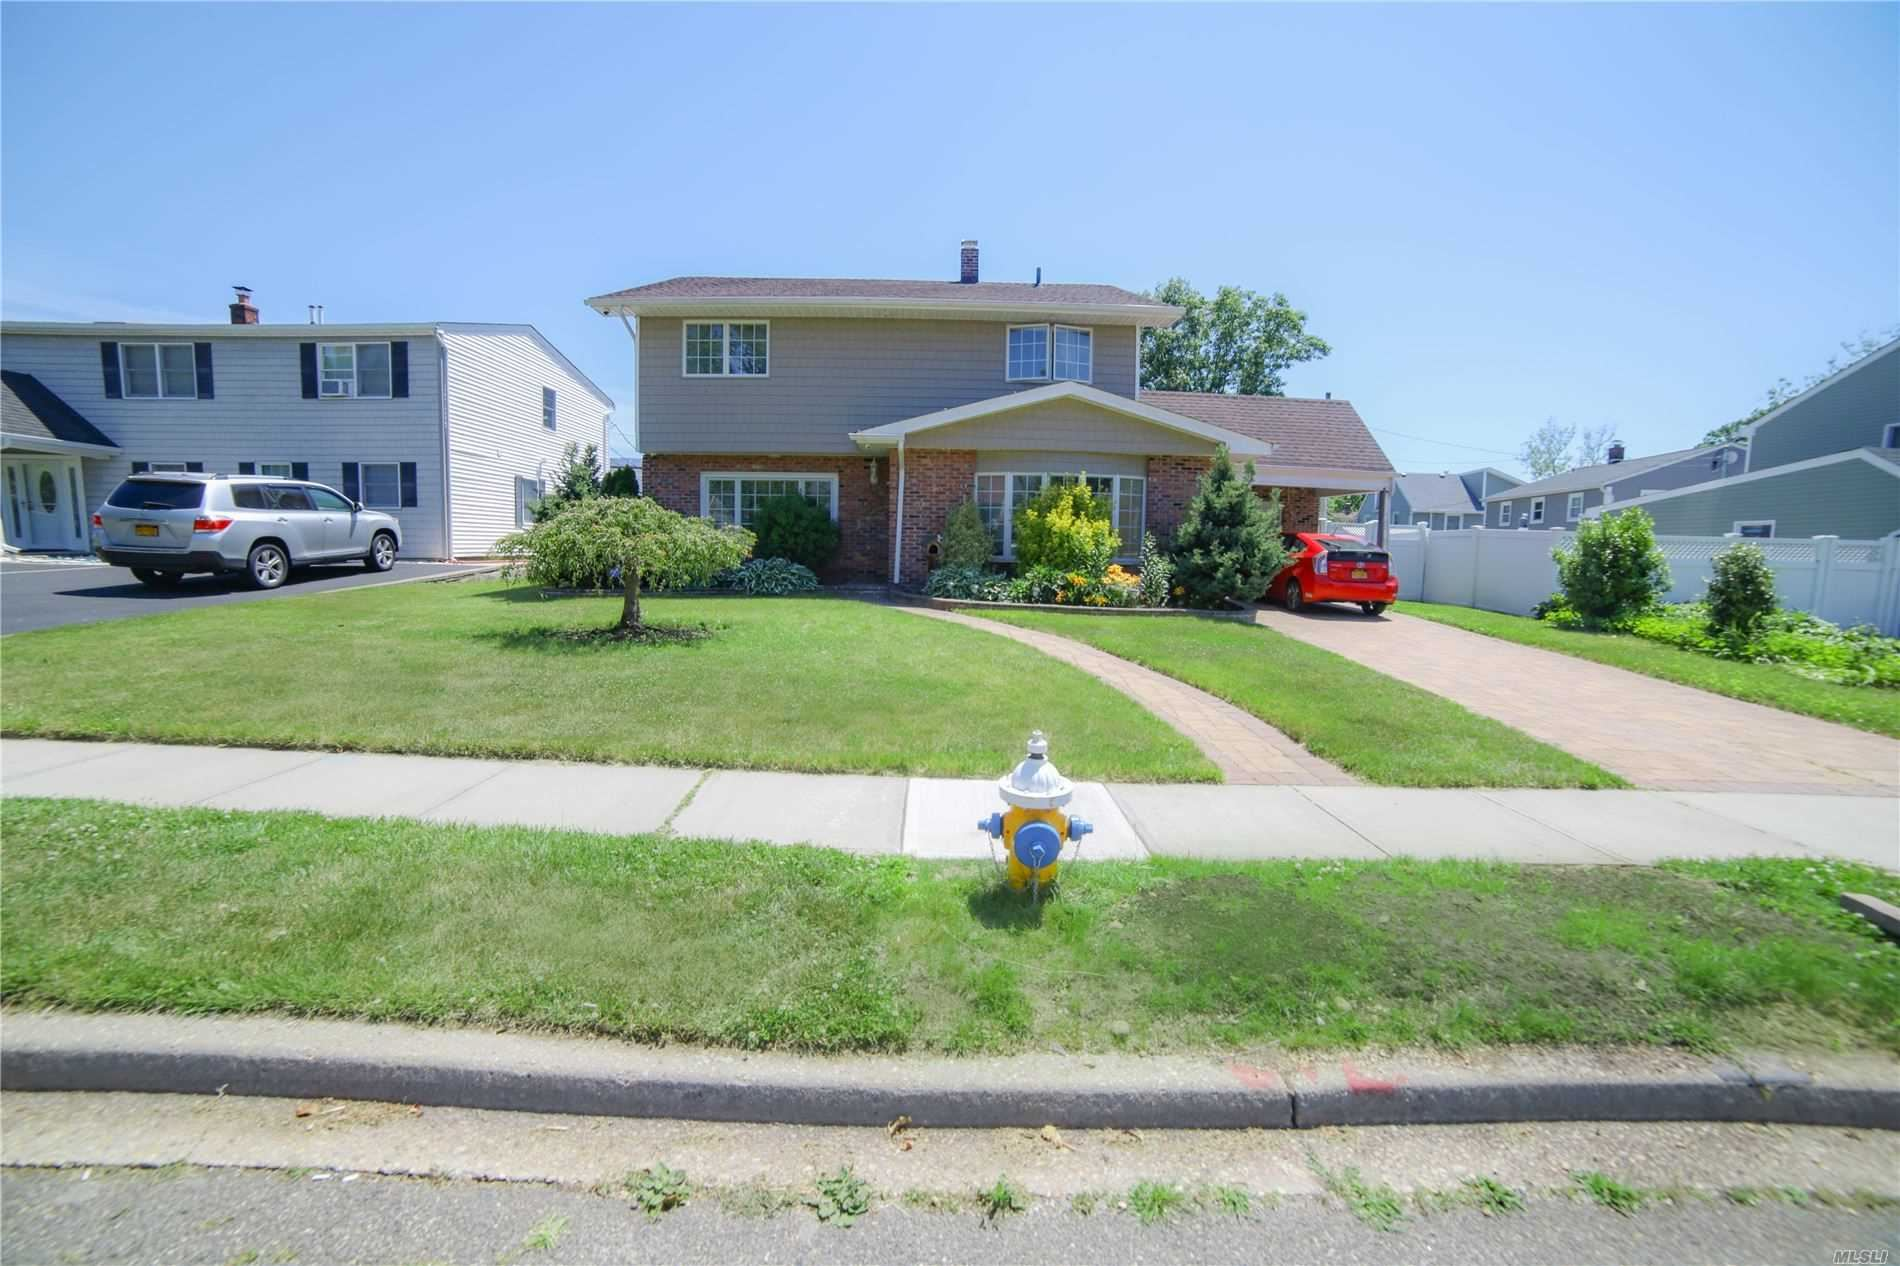 184 Orchid Road, Levittown, NY 11756 - MLS#: 3224421